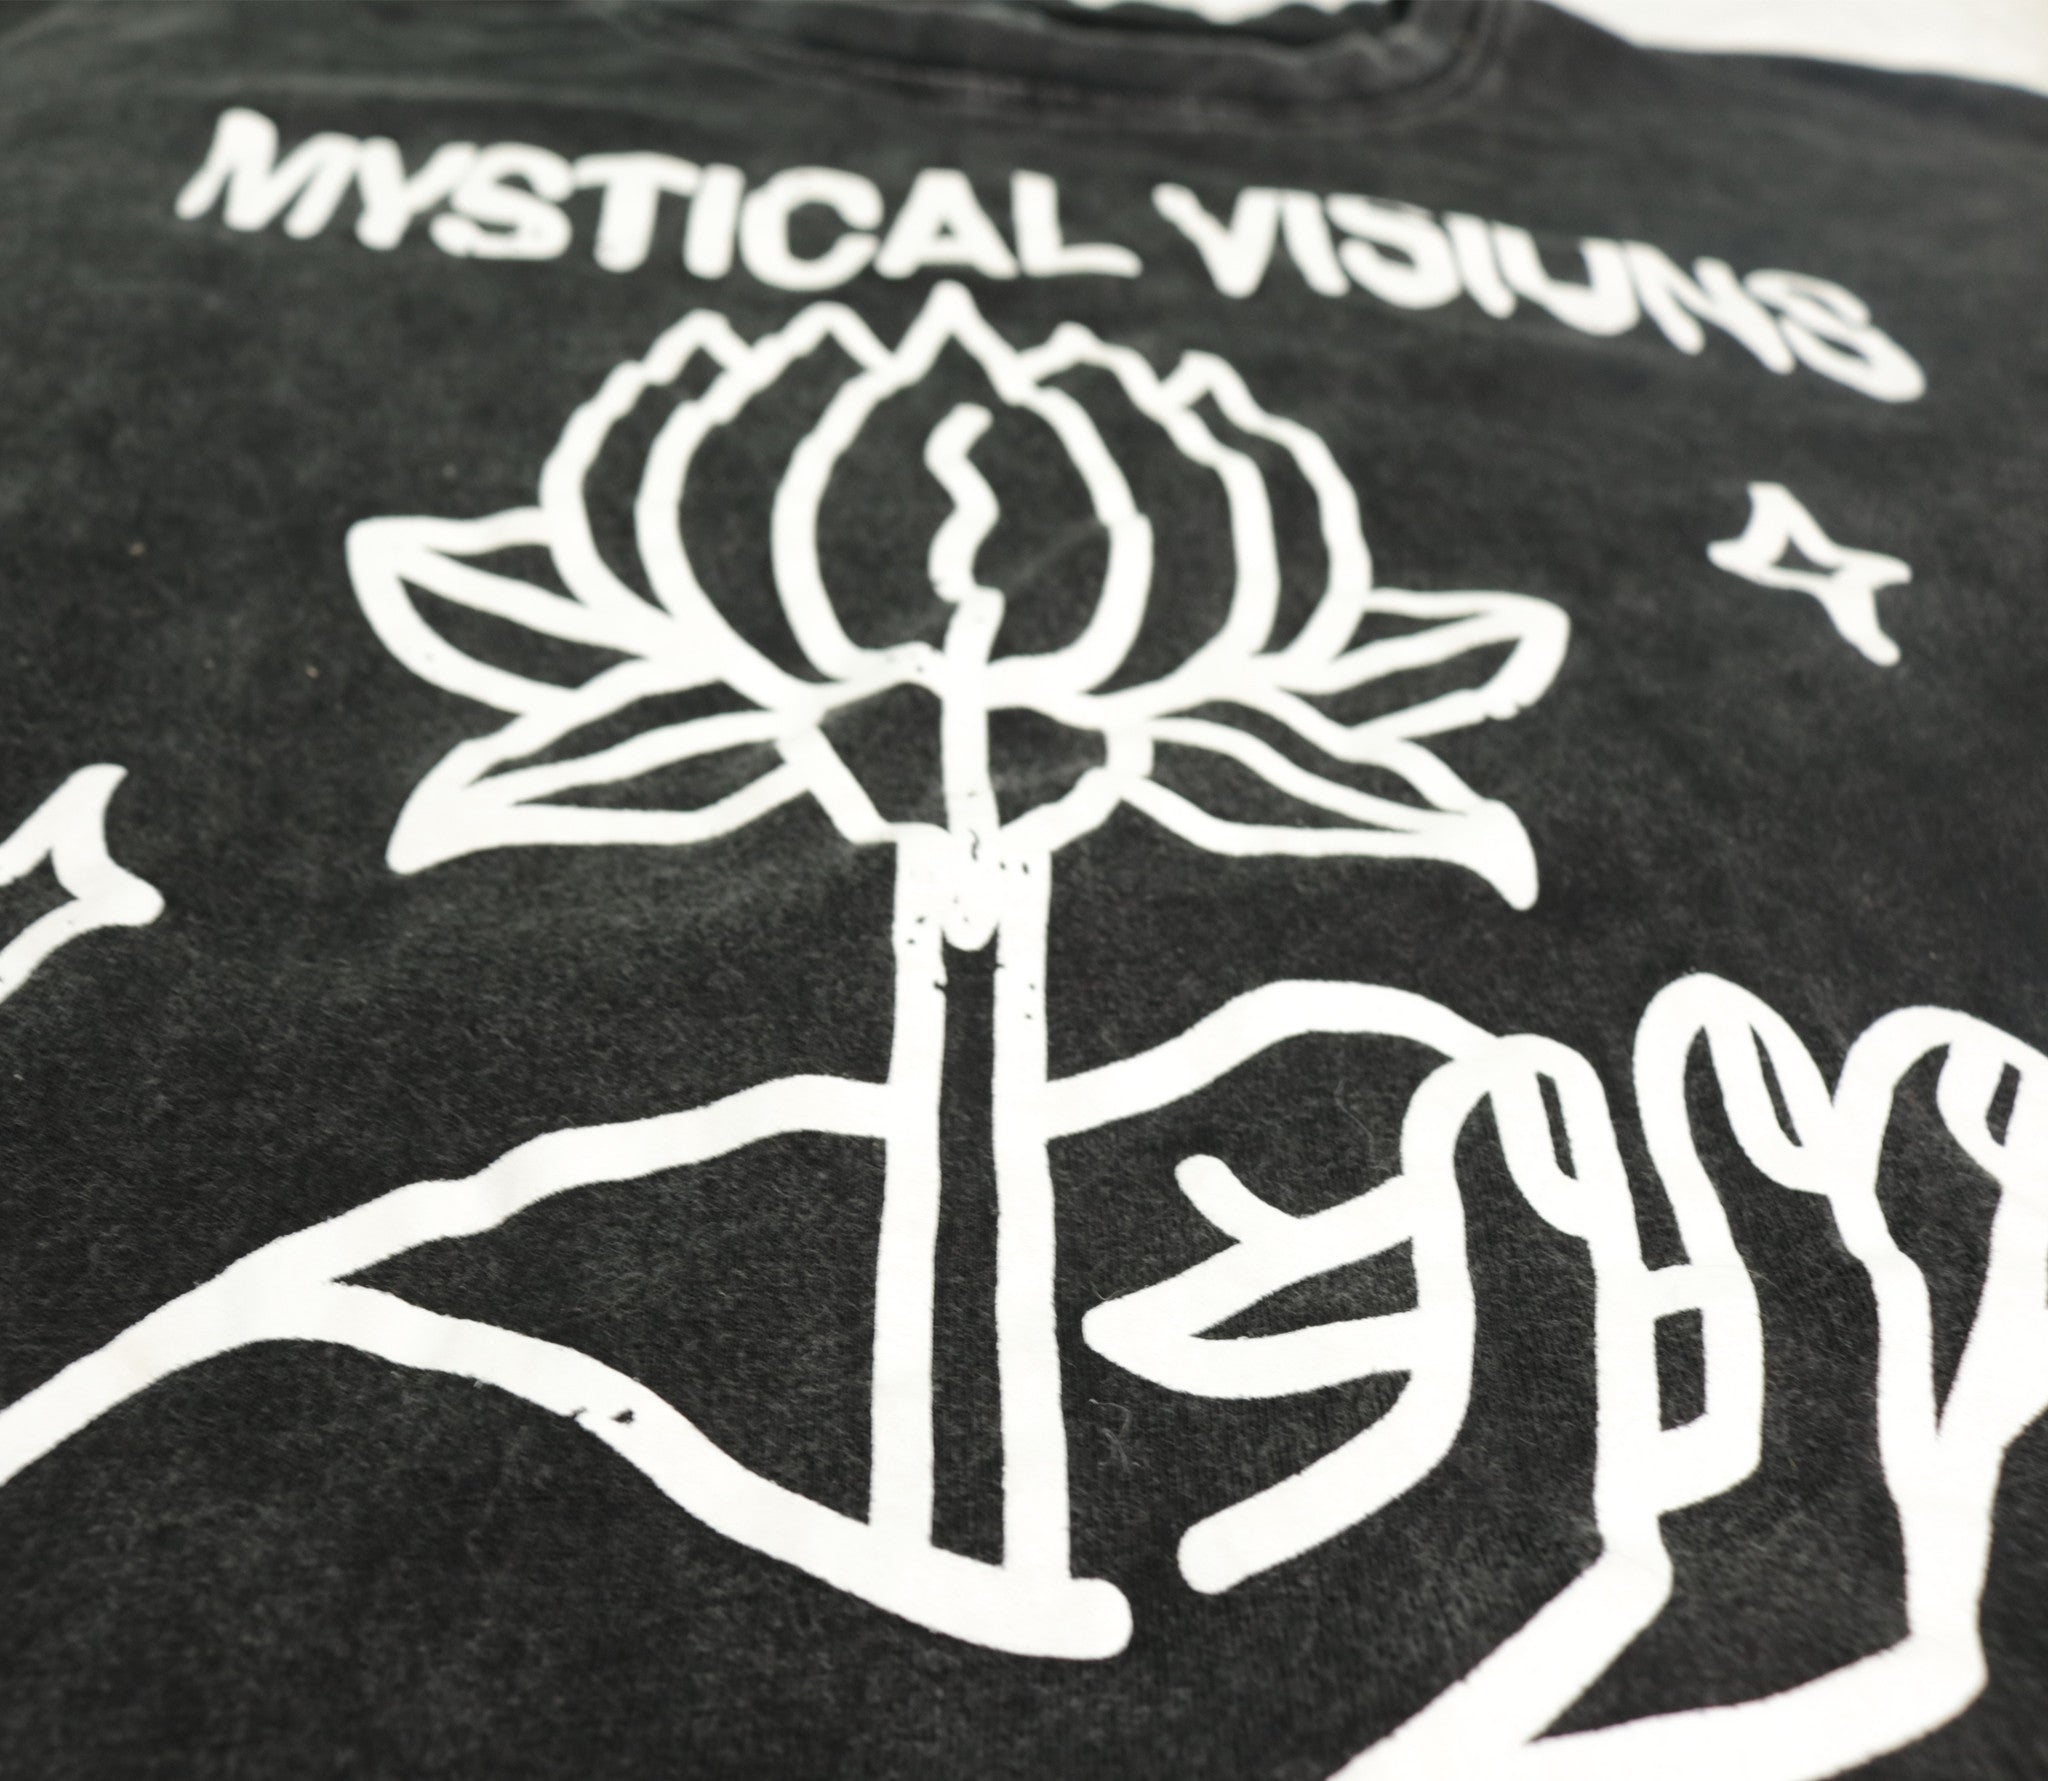 Mystical Visions And Cosmic Vibrations - Oversized Worn Black Shirt